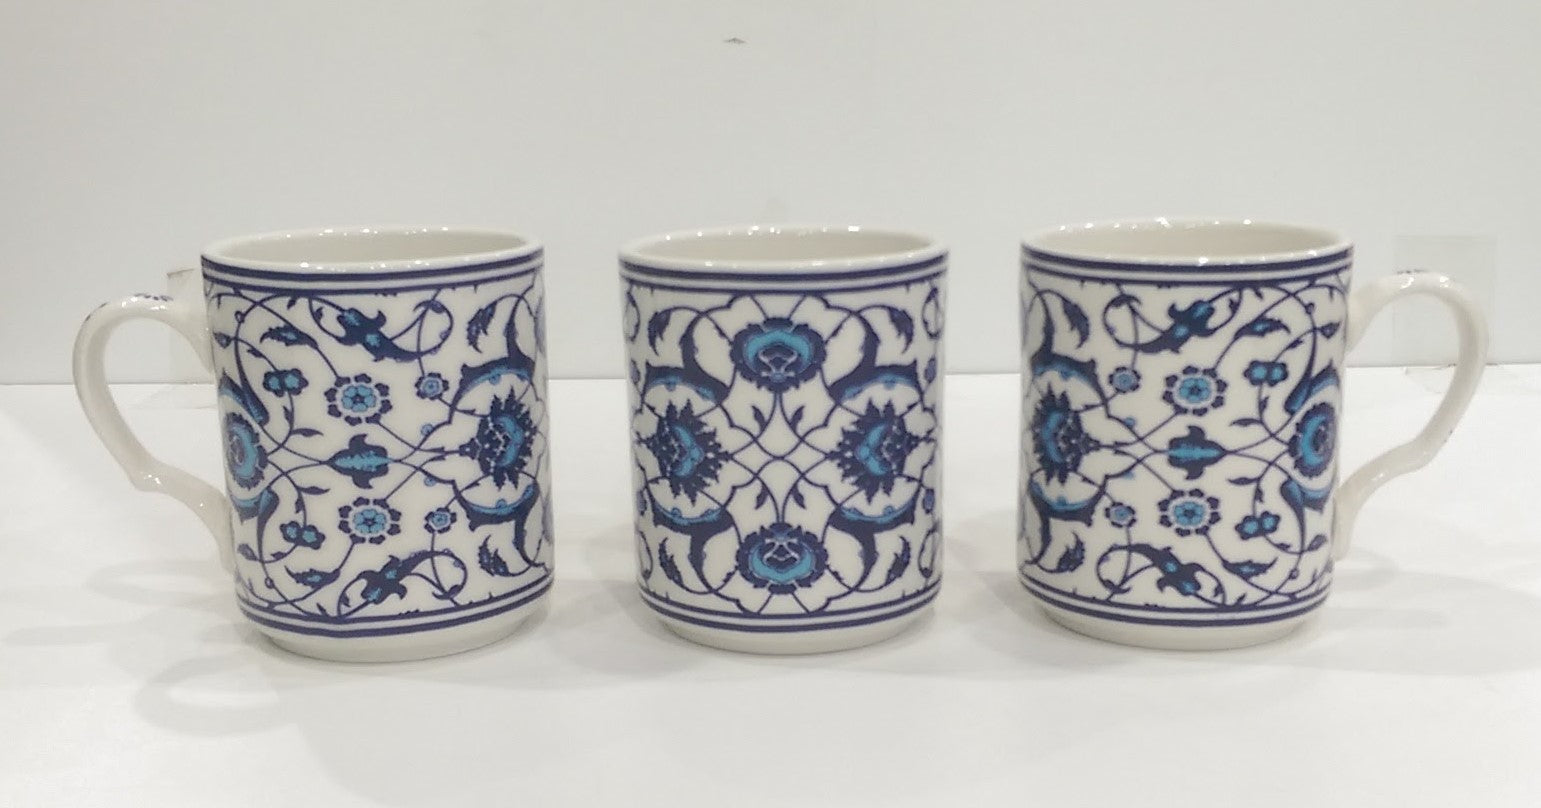 3 Pieces Ceramic Mugs SM-011